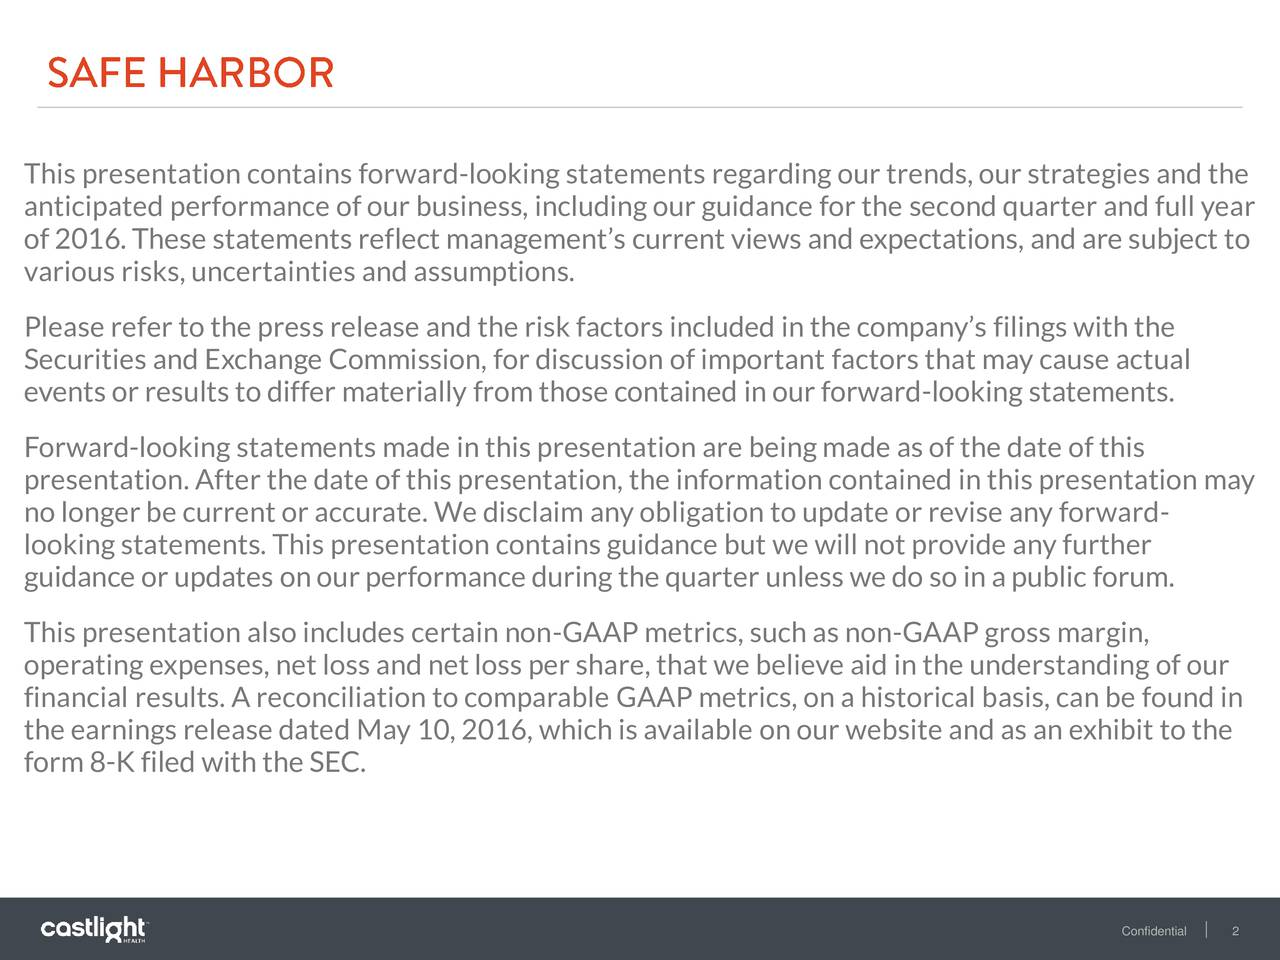 anticipated performance of our business, including our guidance for the second quarter and full year of 2016. These statements reflect managements current views and expectations, and are subject to various risks, uncertainties and assumptions. Please refer to the press release and the risk factors included in the companys filings with the Securities and Exchange Commission, for discussion of important factors that may cause actual events or results to differ materially from those contained in our forward-looking statements. Forward-looking statements made in this presentation are being made as of the date of this presentation. After the date of this presentation, the information contained in this presentation may no longer be current or accurate. We disclaim any obligation to update or revise any forward- looking statements. This presentation contains guidance but we will not provide any further guidance or updates on our performance during the quarter unless we do so in a public forum. This presentation also includes certain non-GAAP metrics, such as non-GAAP gross margin, operating expenses, net loss and net loss per share, that we believe aid in the understanding of our financial results. A reconciliation to comparable GAAP metrics, on a historical basis, can be found in the earnings release dated May 10, 2016, which is available on our website and as an exhibit to the form 8-K filed with the SEC. Confidenti2l